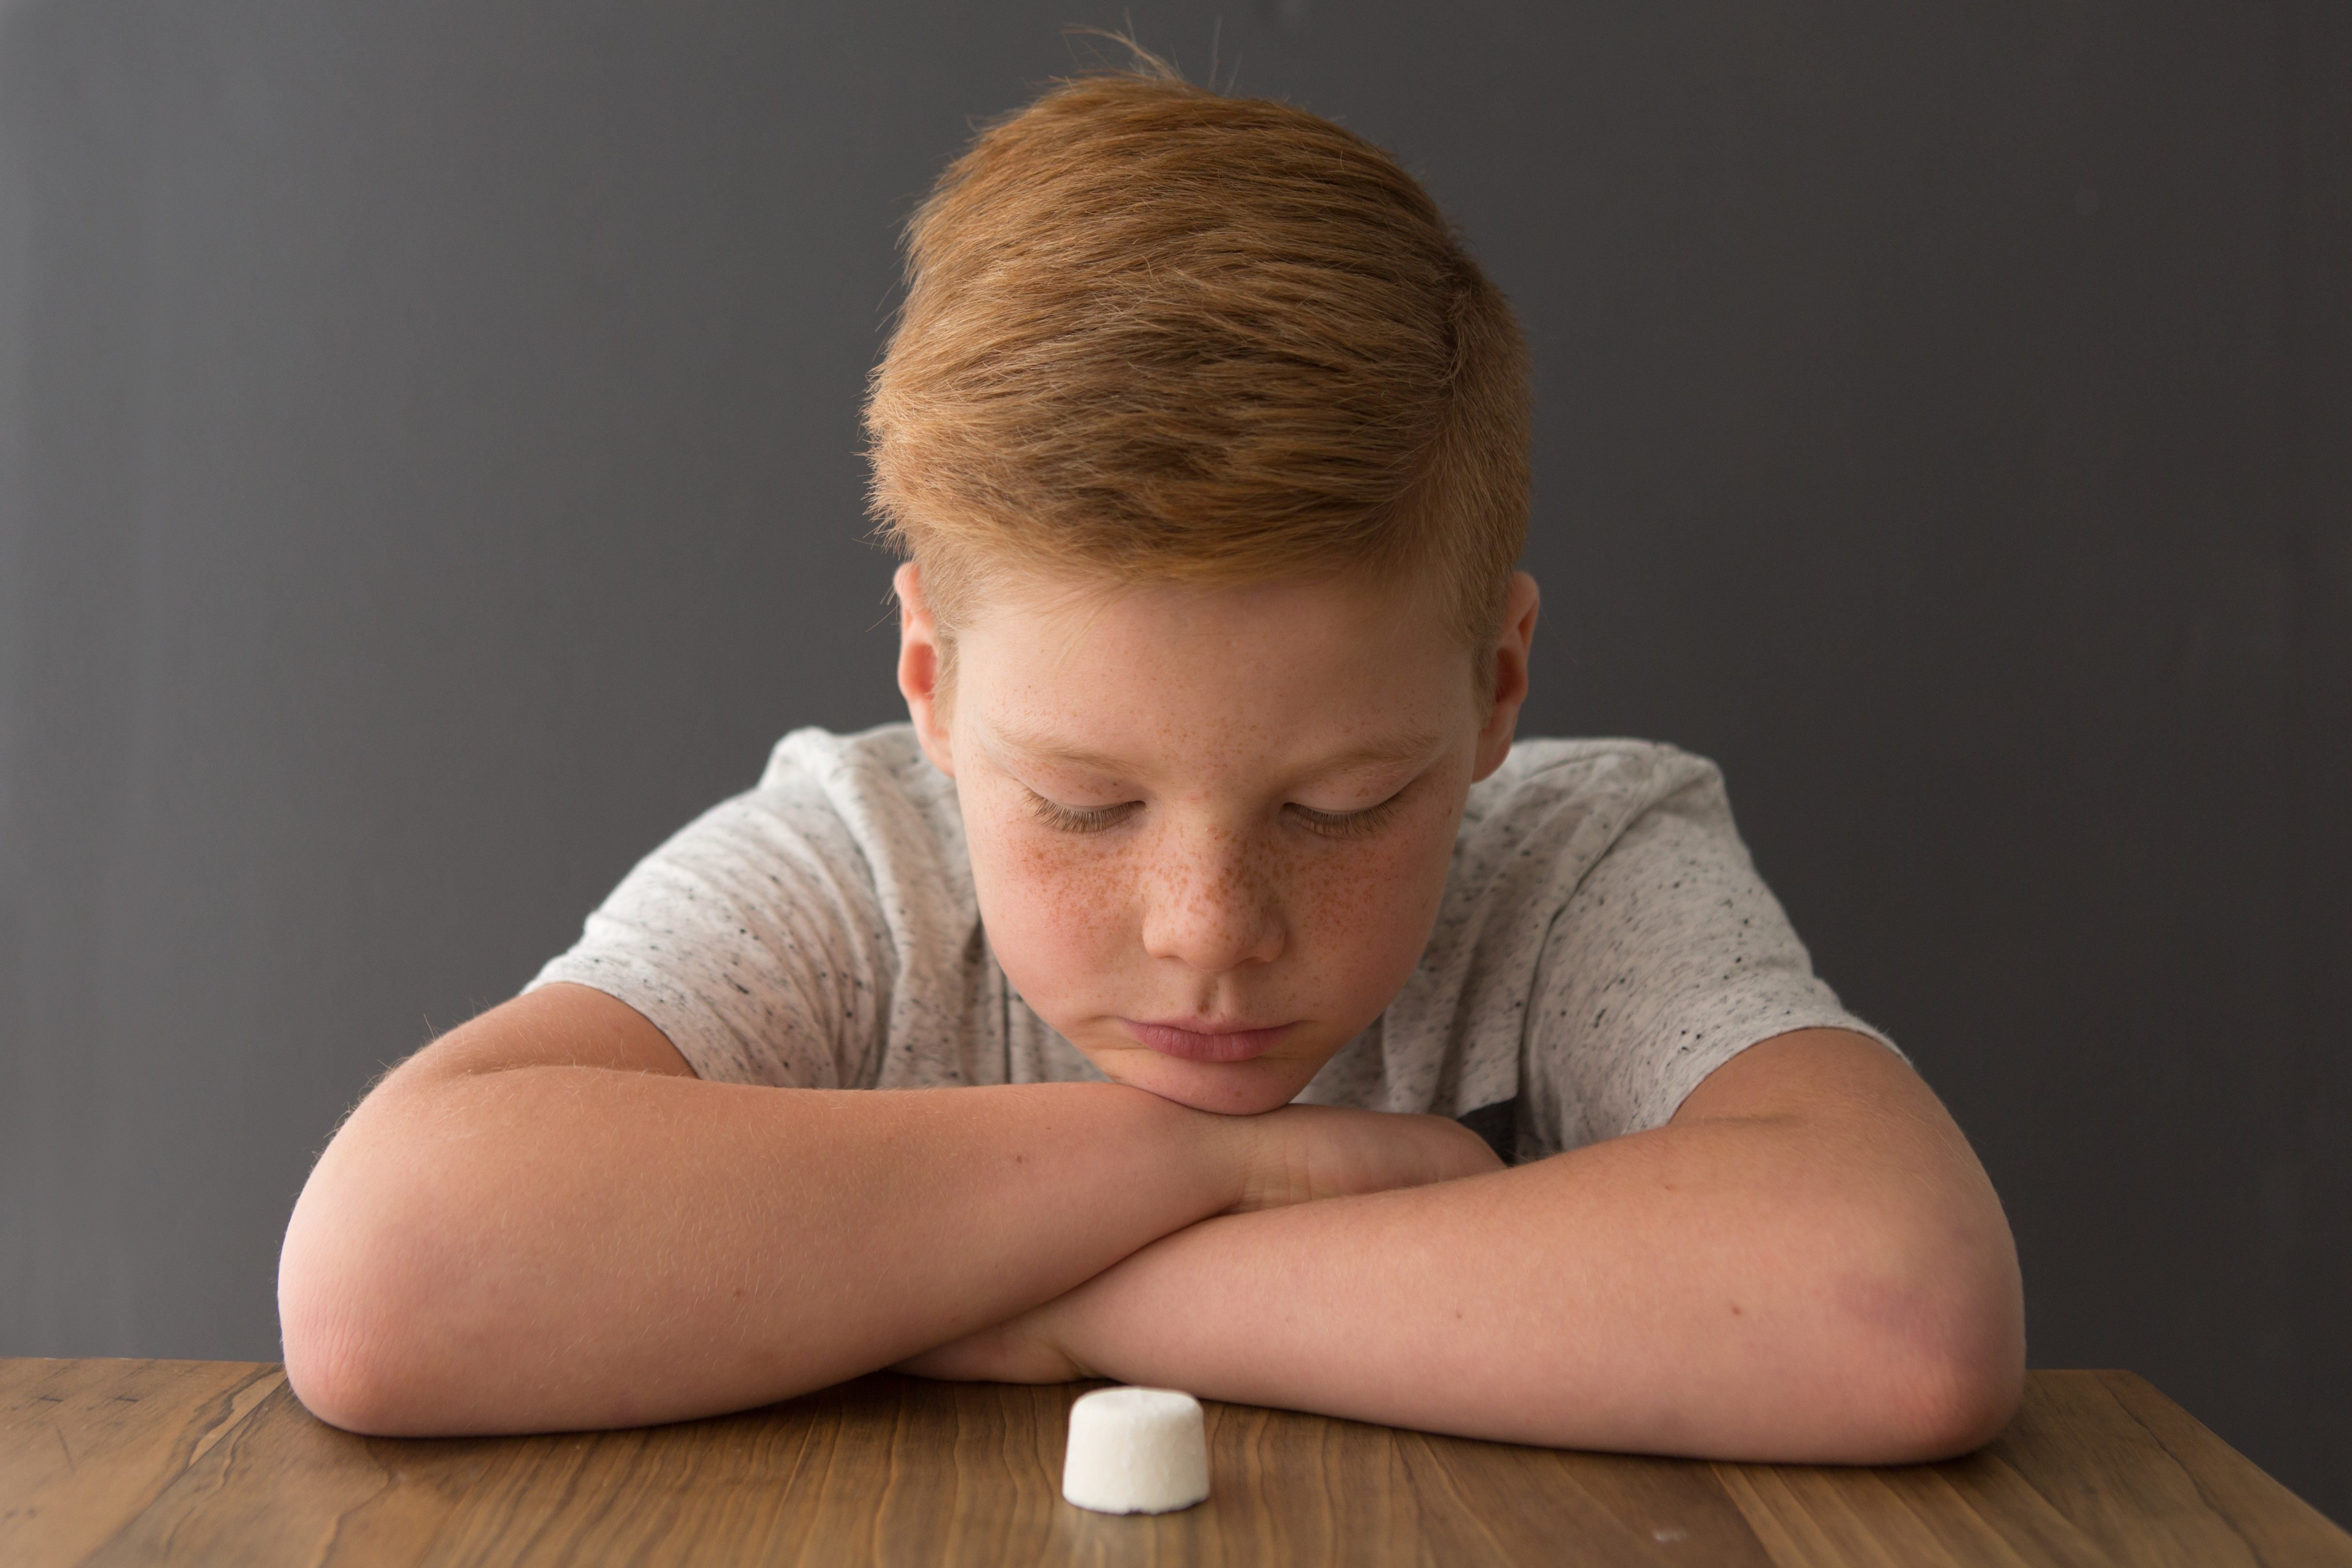 Redhead boy sits at the table opposite a single marshmallow, attempting the marshmallow test